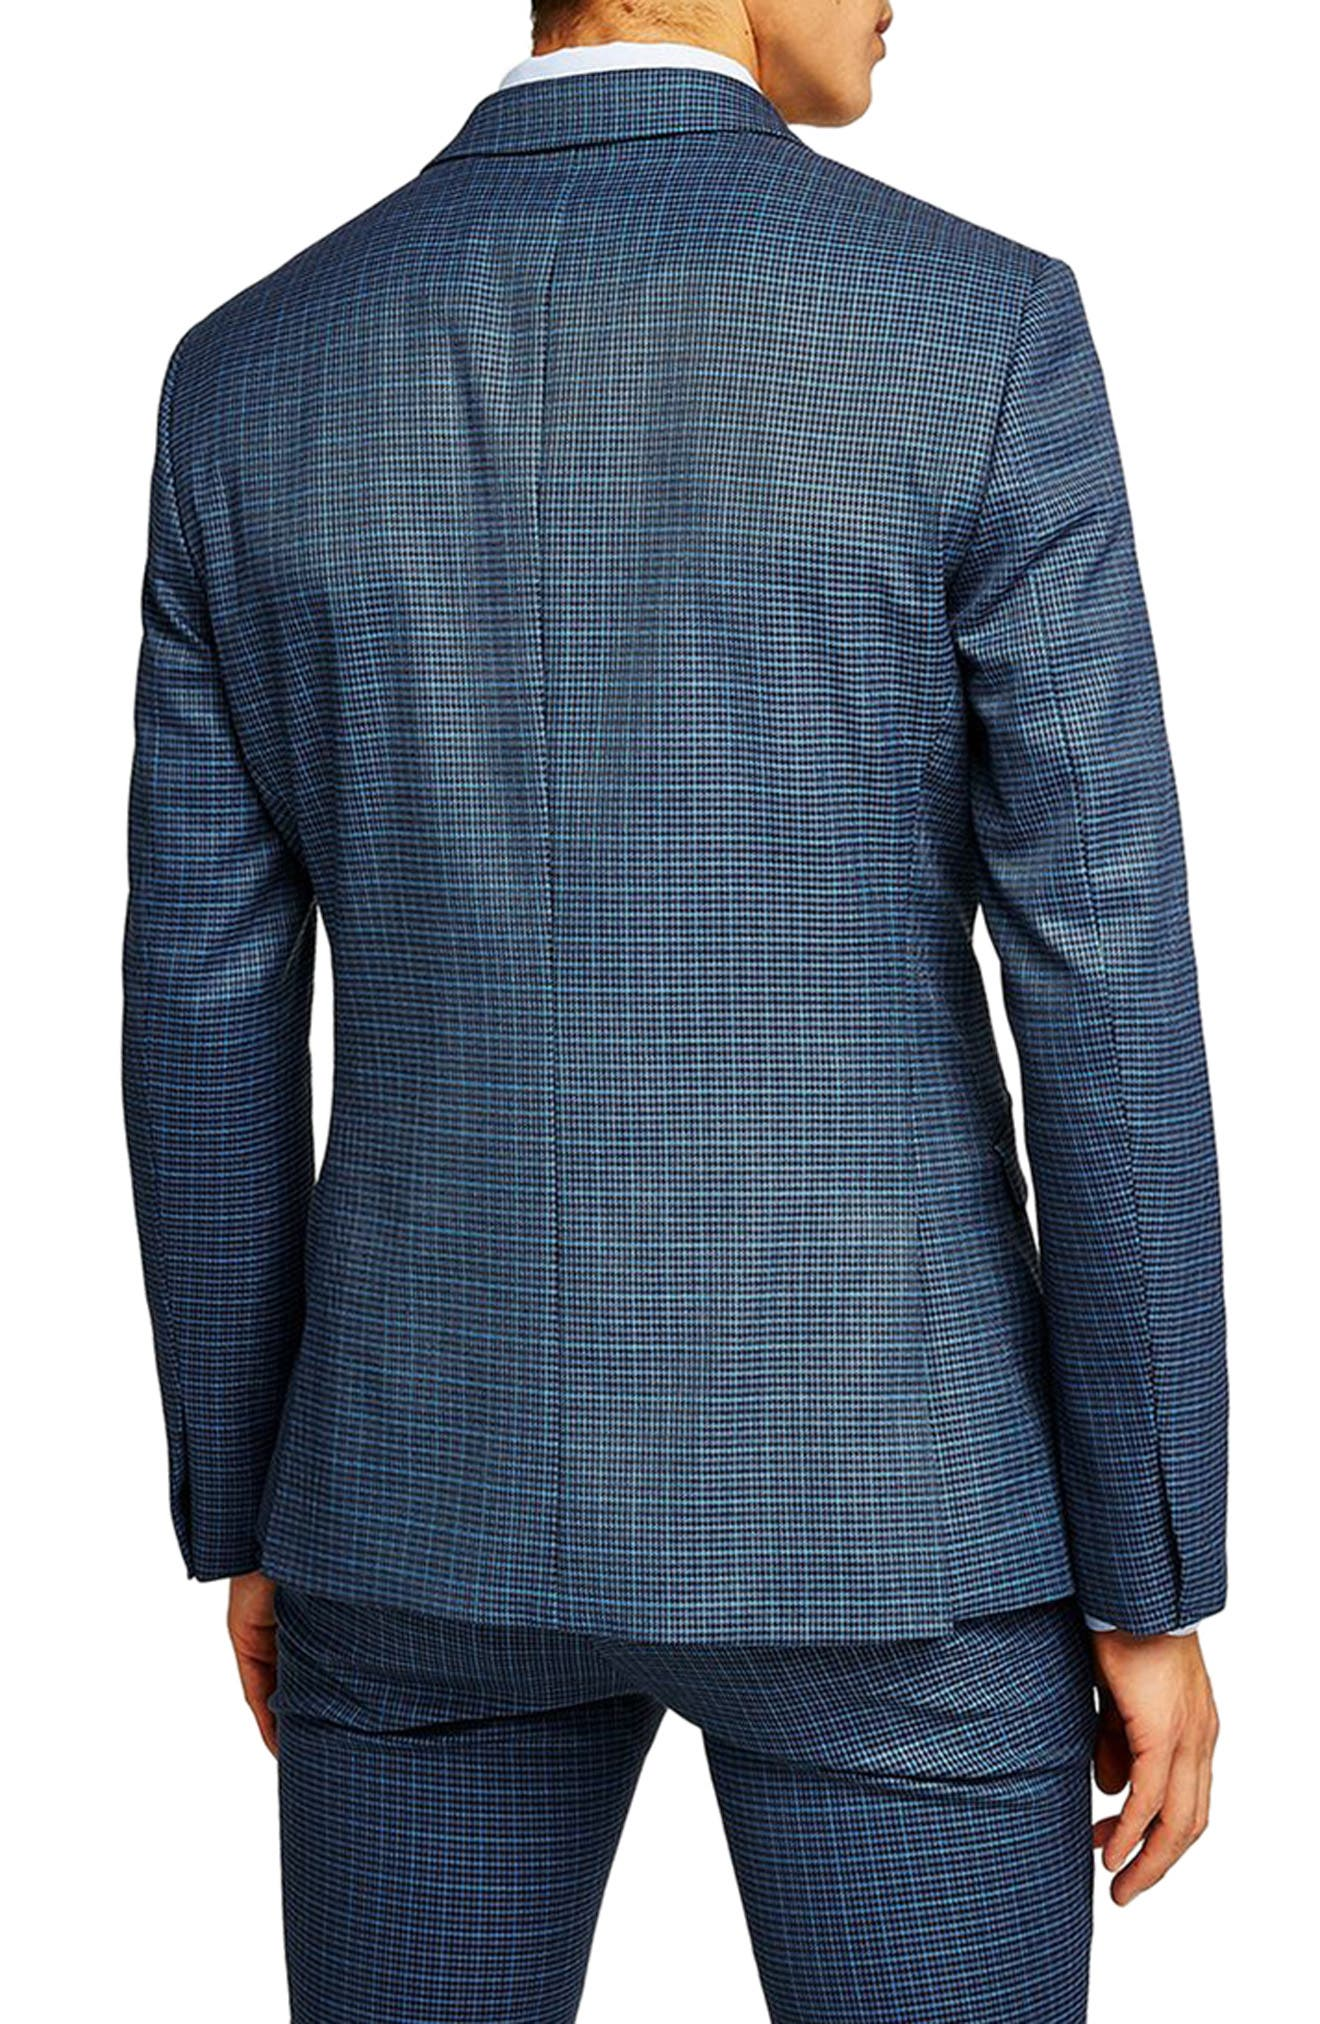 Check Skinny Fit Suit Jacket,                             Alternate thumbnail 2, color,                             401